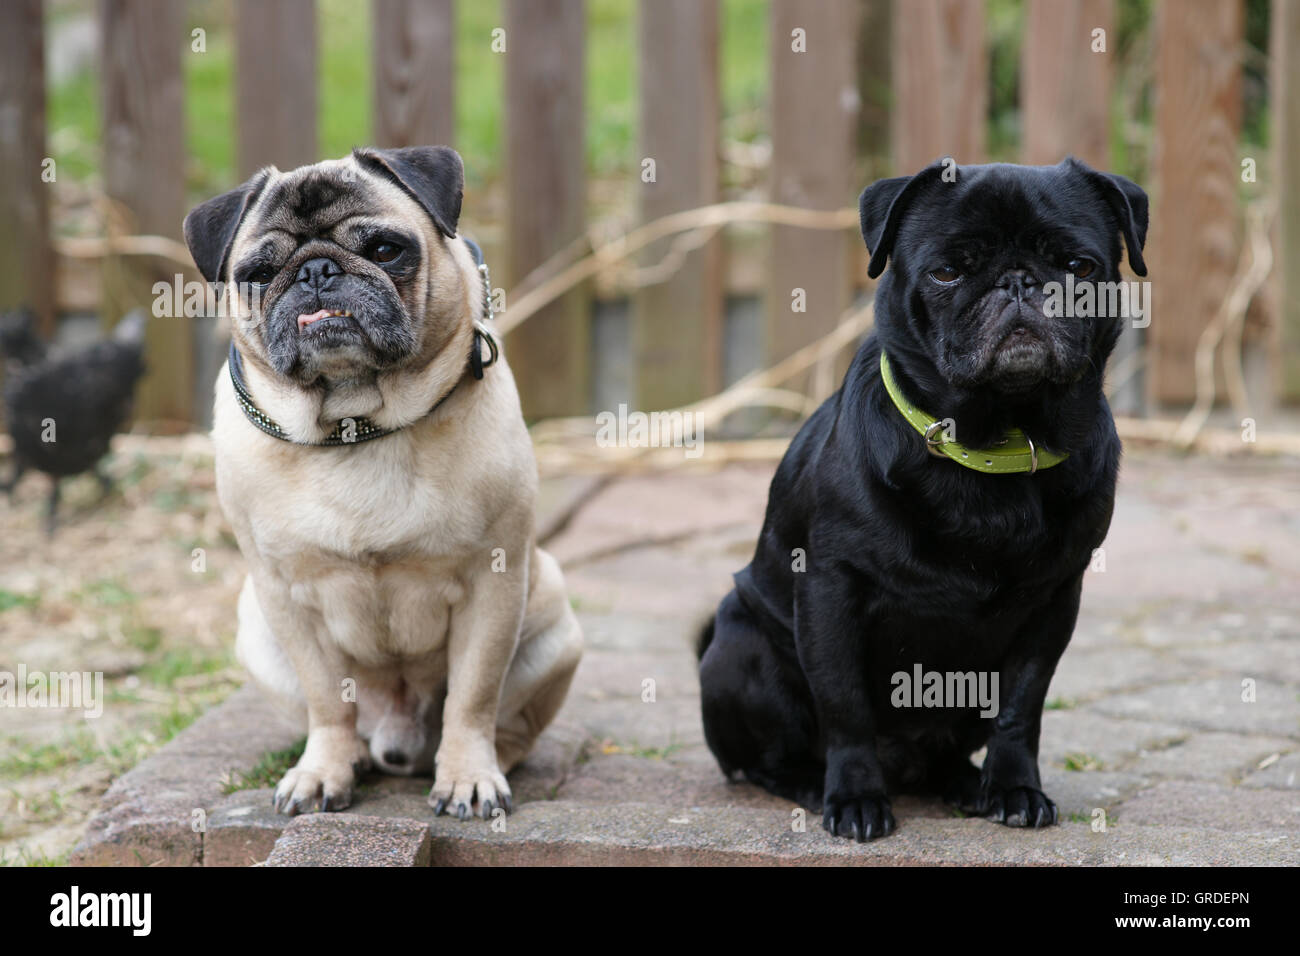 Beige And Black Pug Sit And Wait And Look Proud, Arrogant And Bored - Stock Image